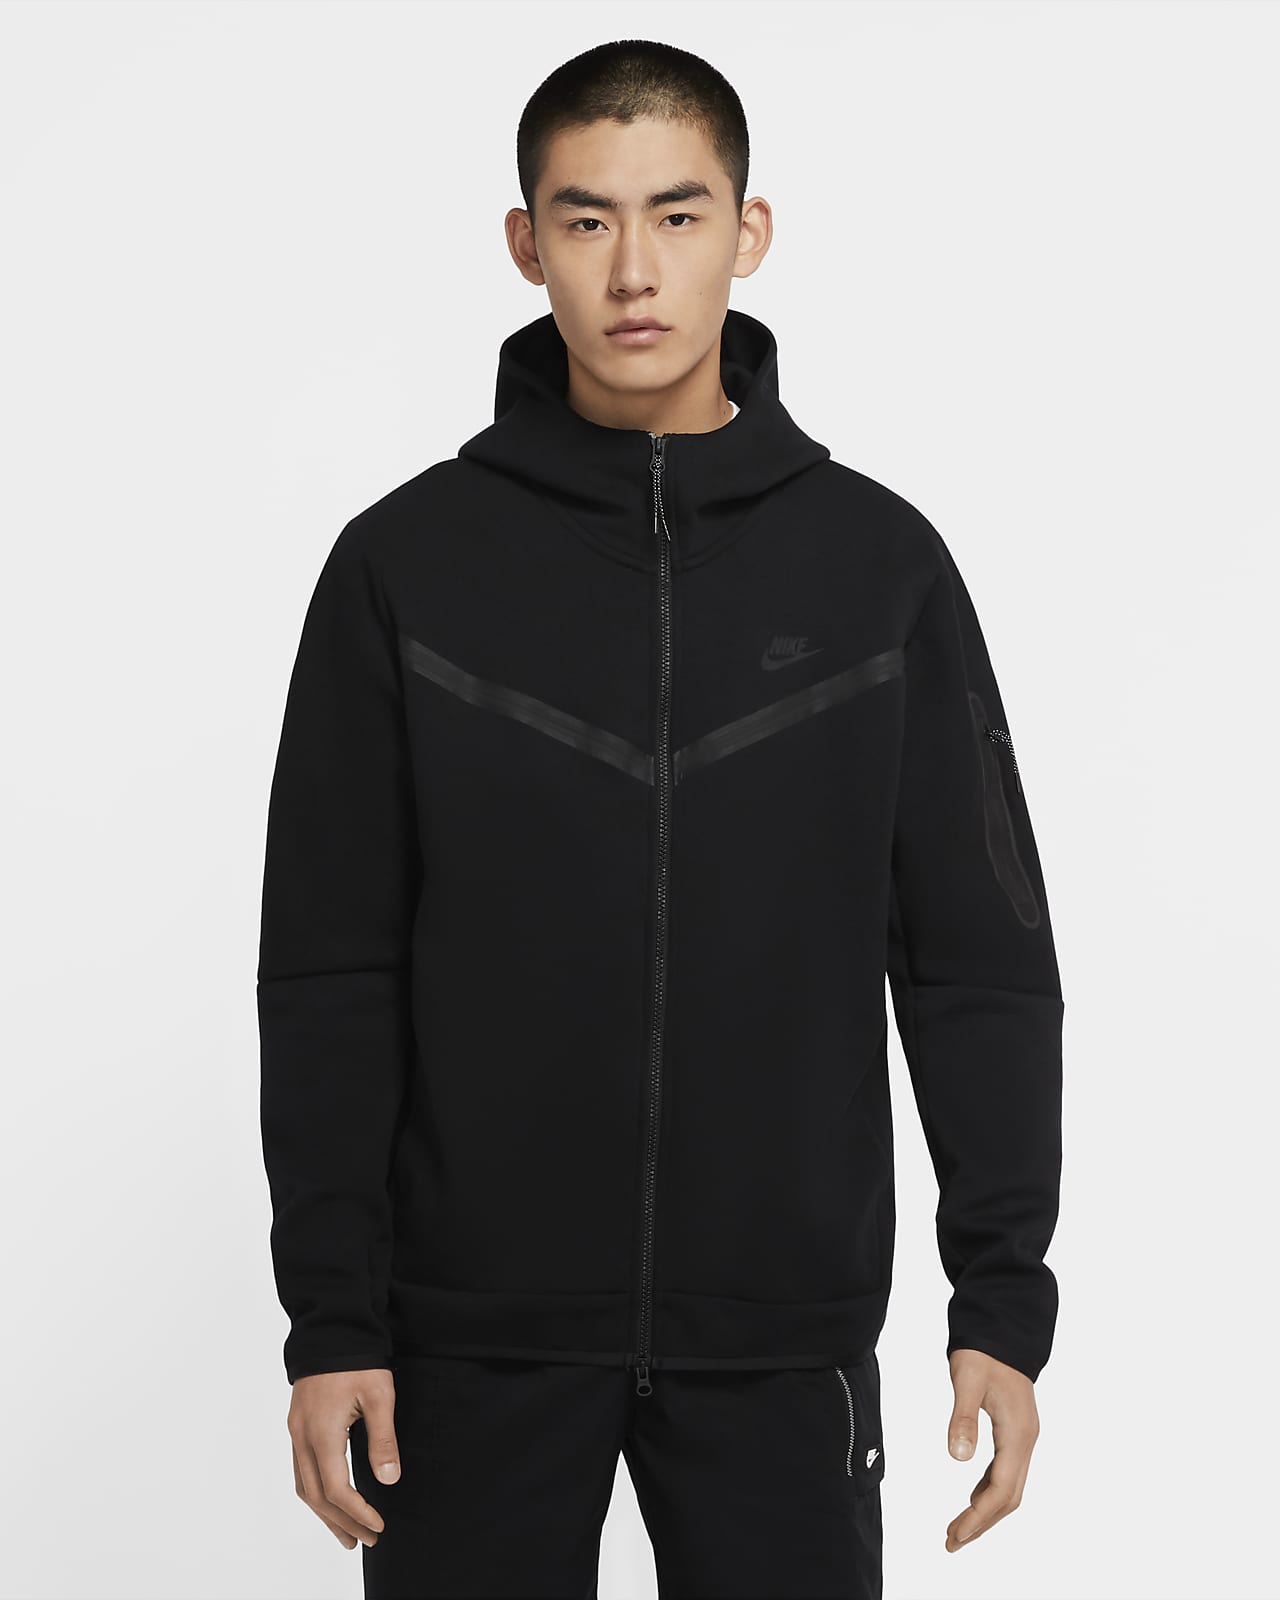 sequía Sada impacto  Nike Sportswear Tech Fleece Men's Full-Zip Hoodie. Nike.com